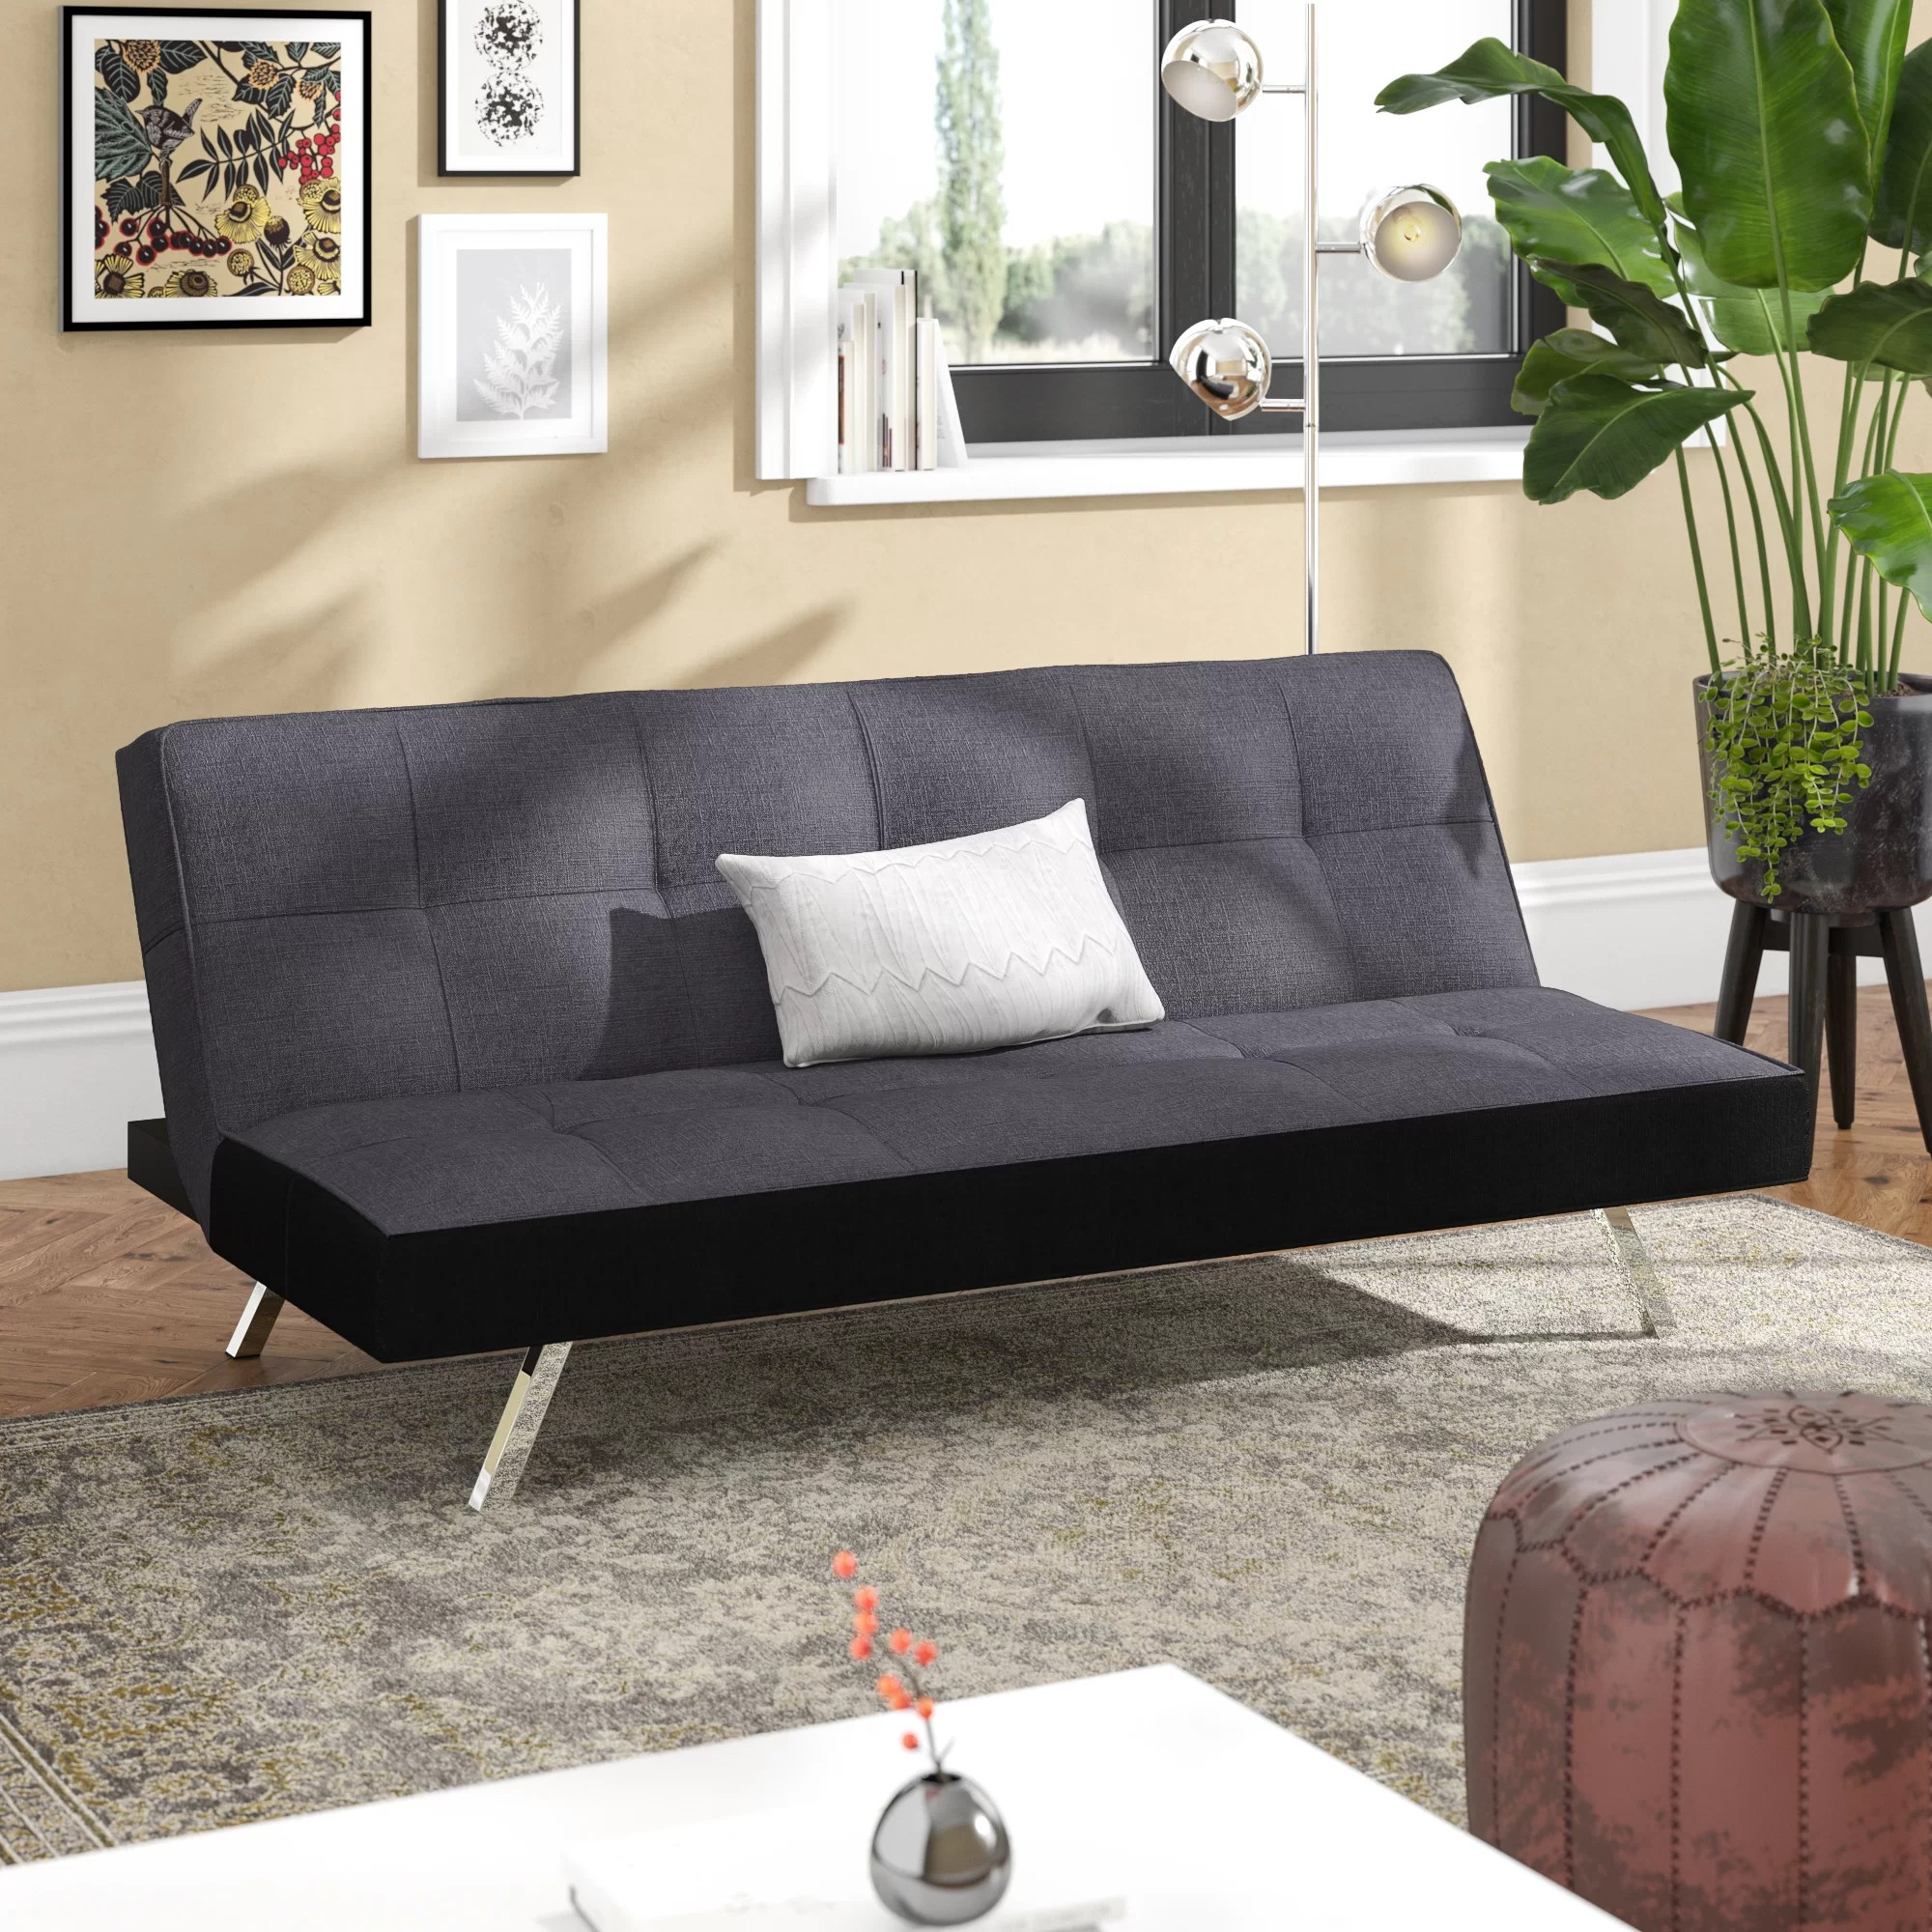 Table Clic Clac Rayfield 3 Seater Clic Clac Sofa Bed